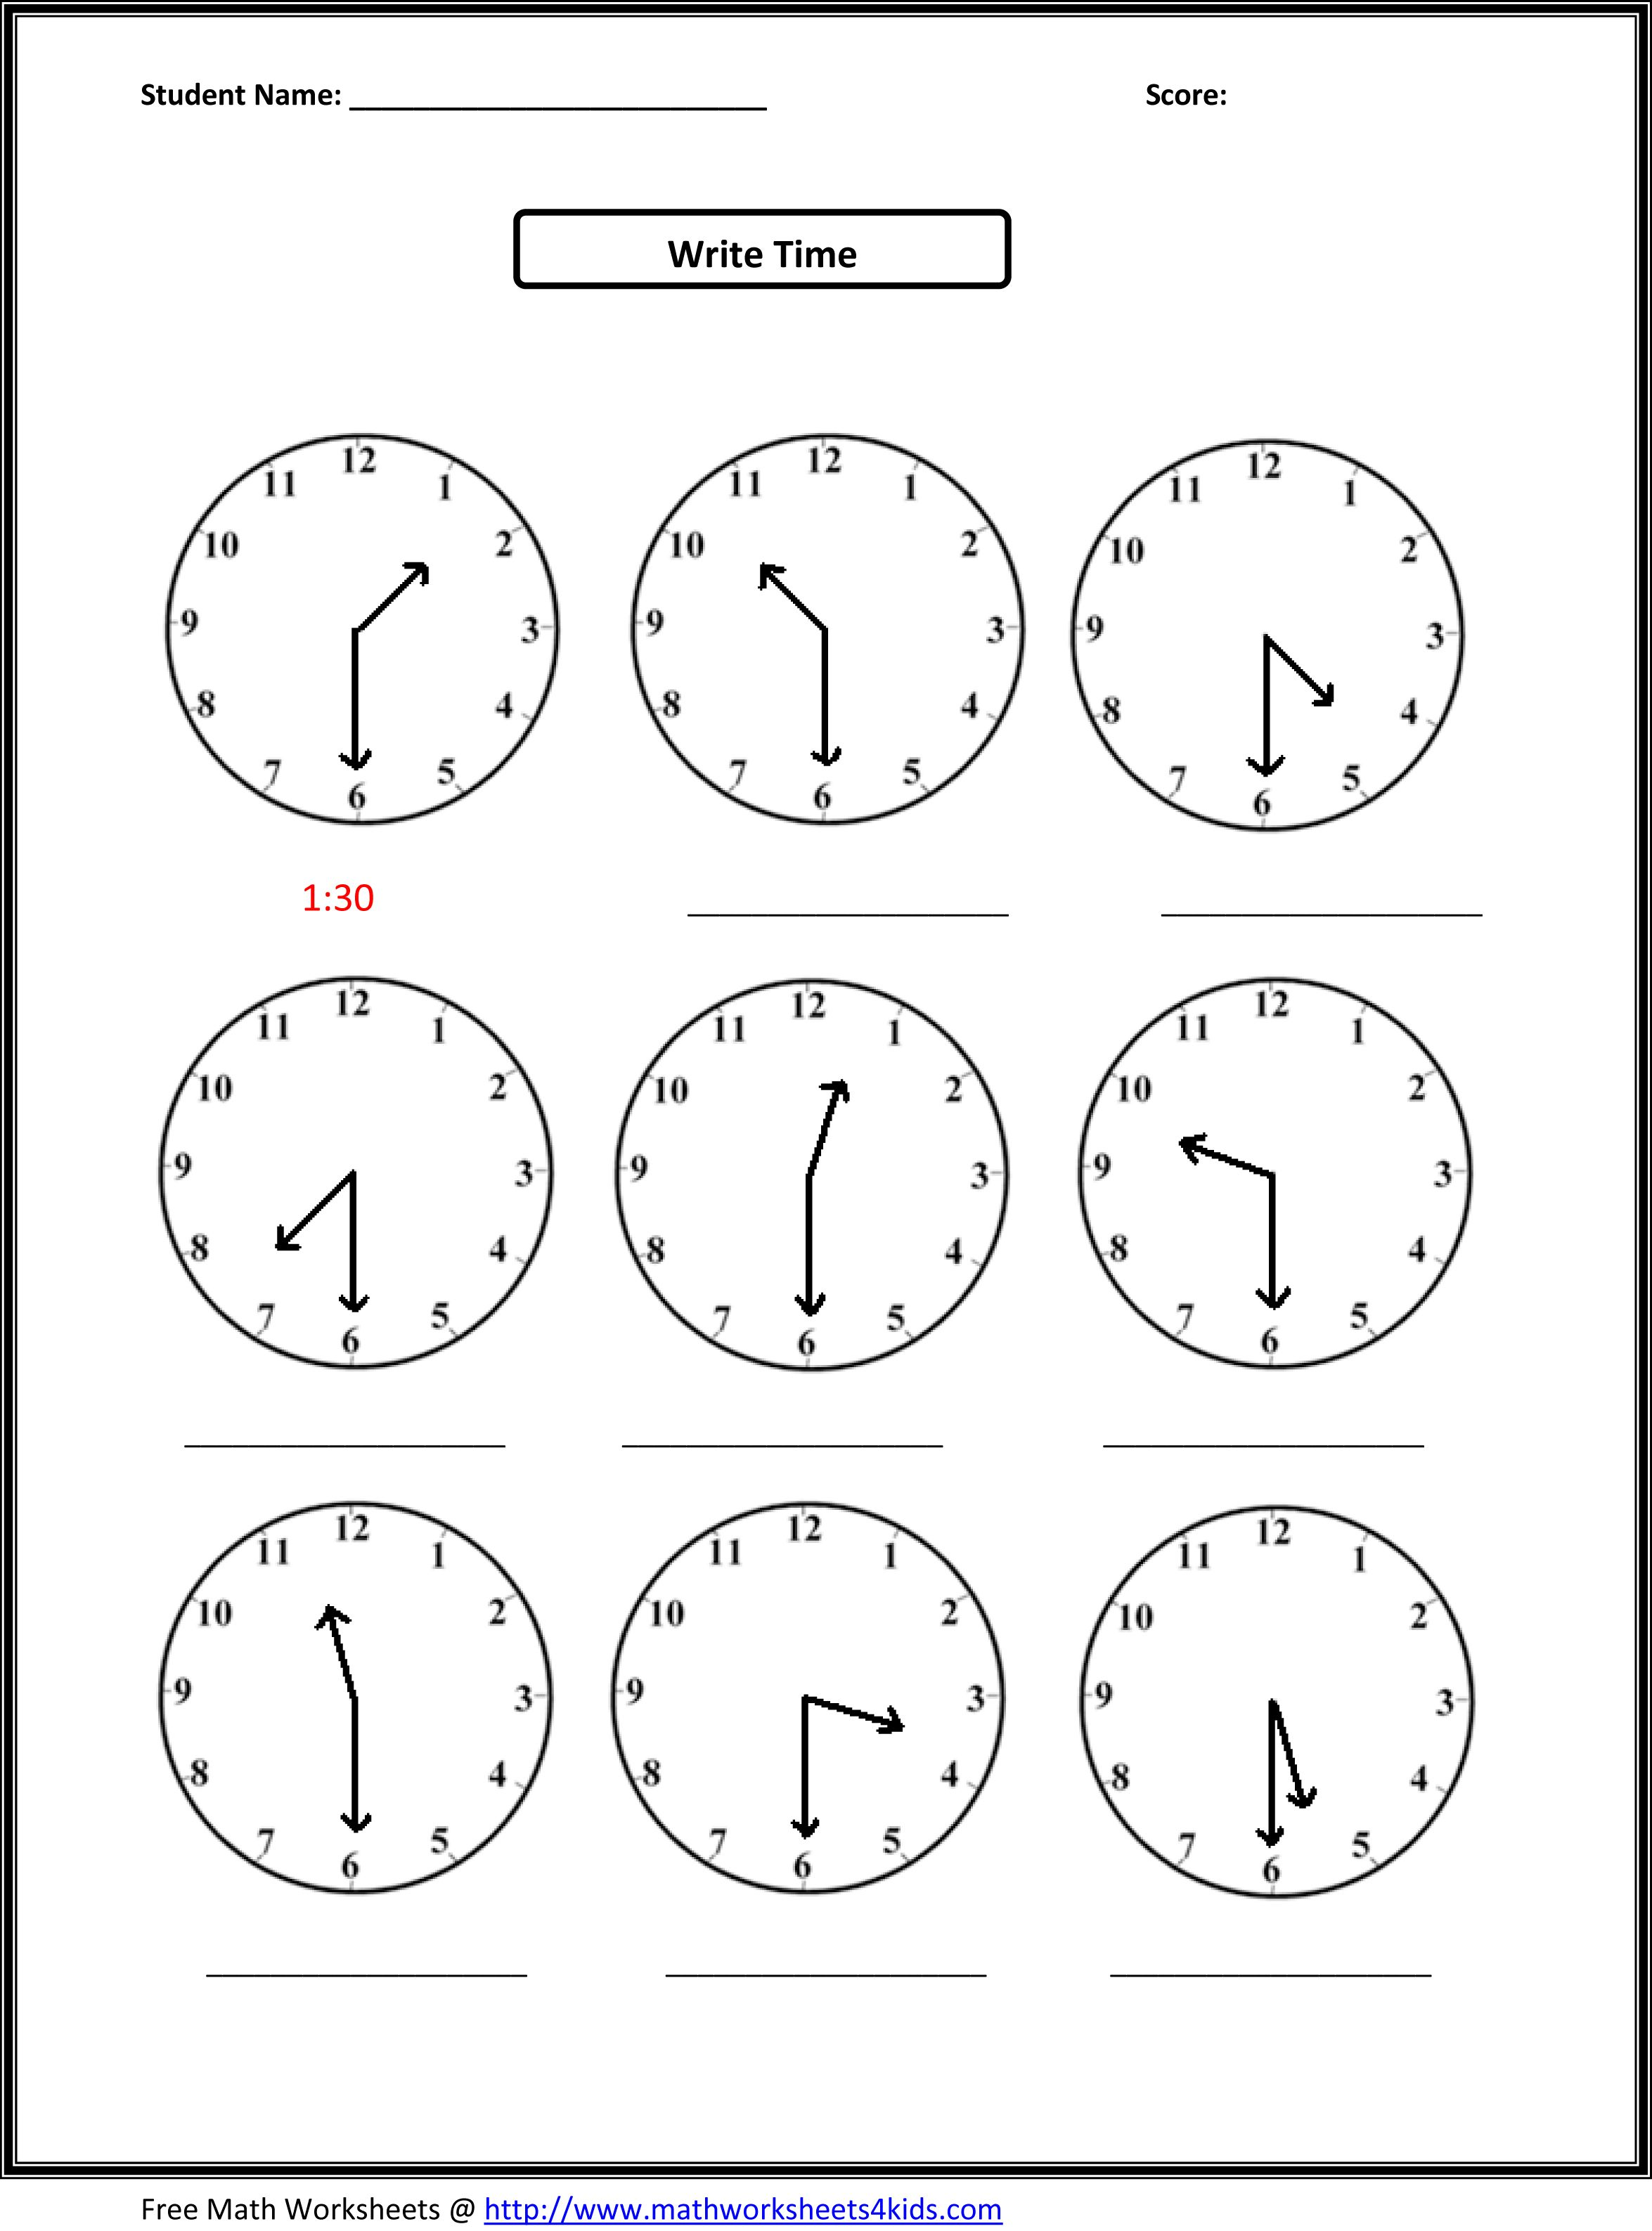 Proatmealus  Prepossessing Worksheet On Time For Grade   Reocurent With Handsome Free Printable Telling Time Worksheets Nd Grade  Reocurent With Captivating Preposition Worksheet For Grade  Also Prewriting Worksheets For Preschoolers In Addition Outline Worksheets And Grammar Worksheets Grade  As Well As Animal Habitats Worksheet Additionally Circle Area Worksheets From Reocurentcom With Proatmealus  Handsome Worksheet On Time For Grade   Reocurent With Captivating Free Printable Telling Time Worksheets Nd Grade  Reocurent And Prepossessing Preposition Worksheet For Grade  Also Prewriting Worksheets For Preschoolers In Addition Outline Worksheets From Reocurentcom